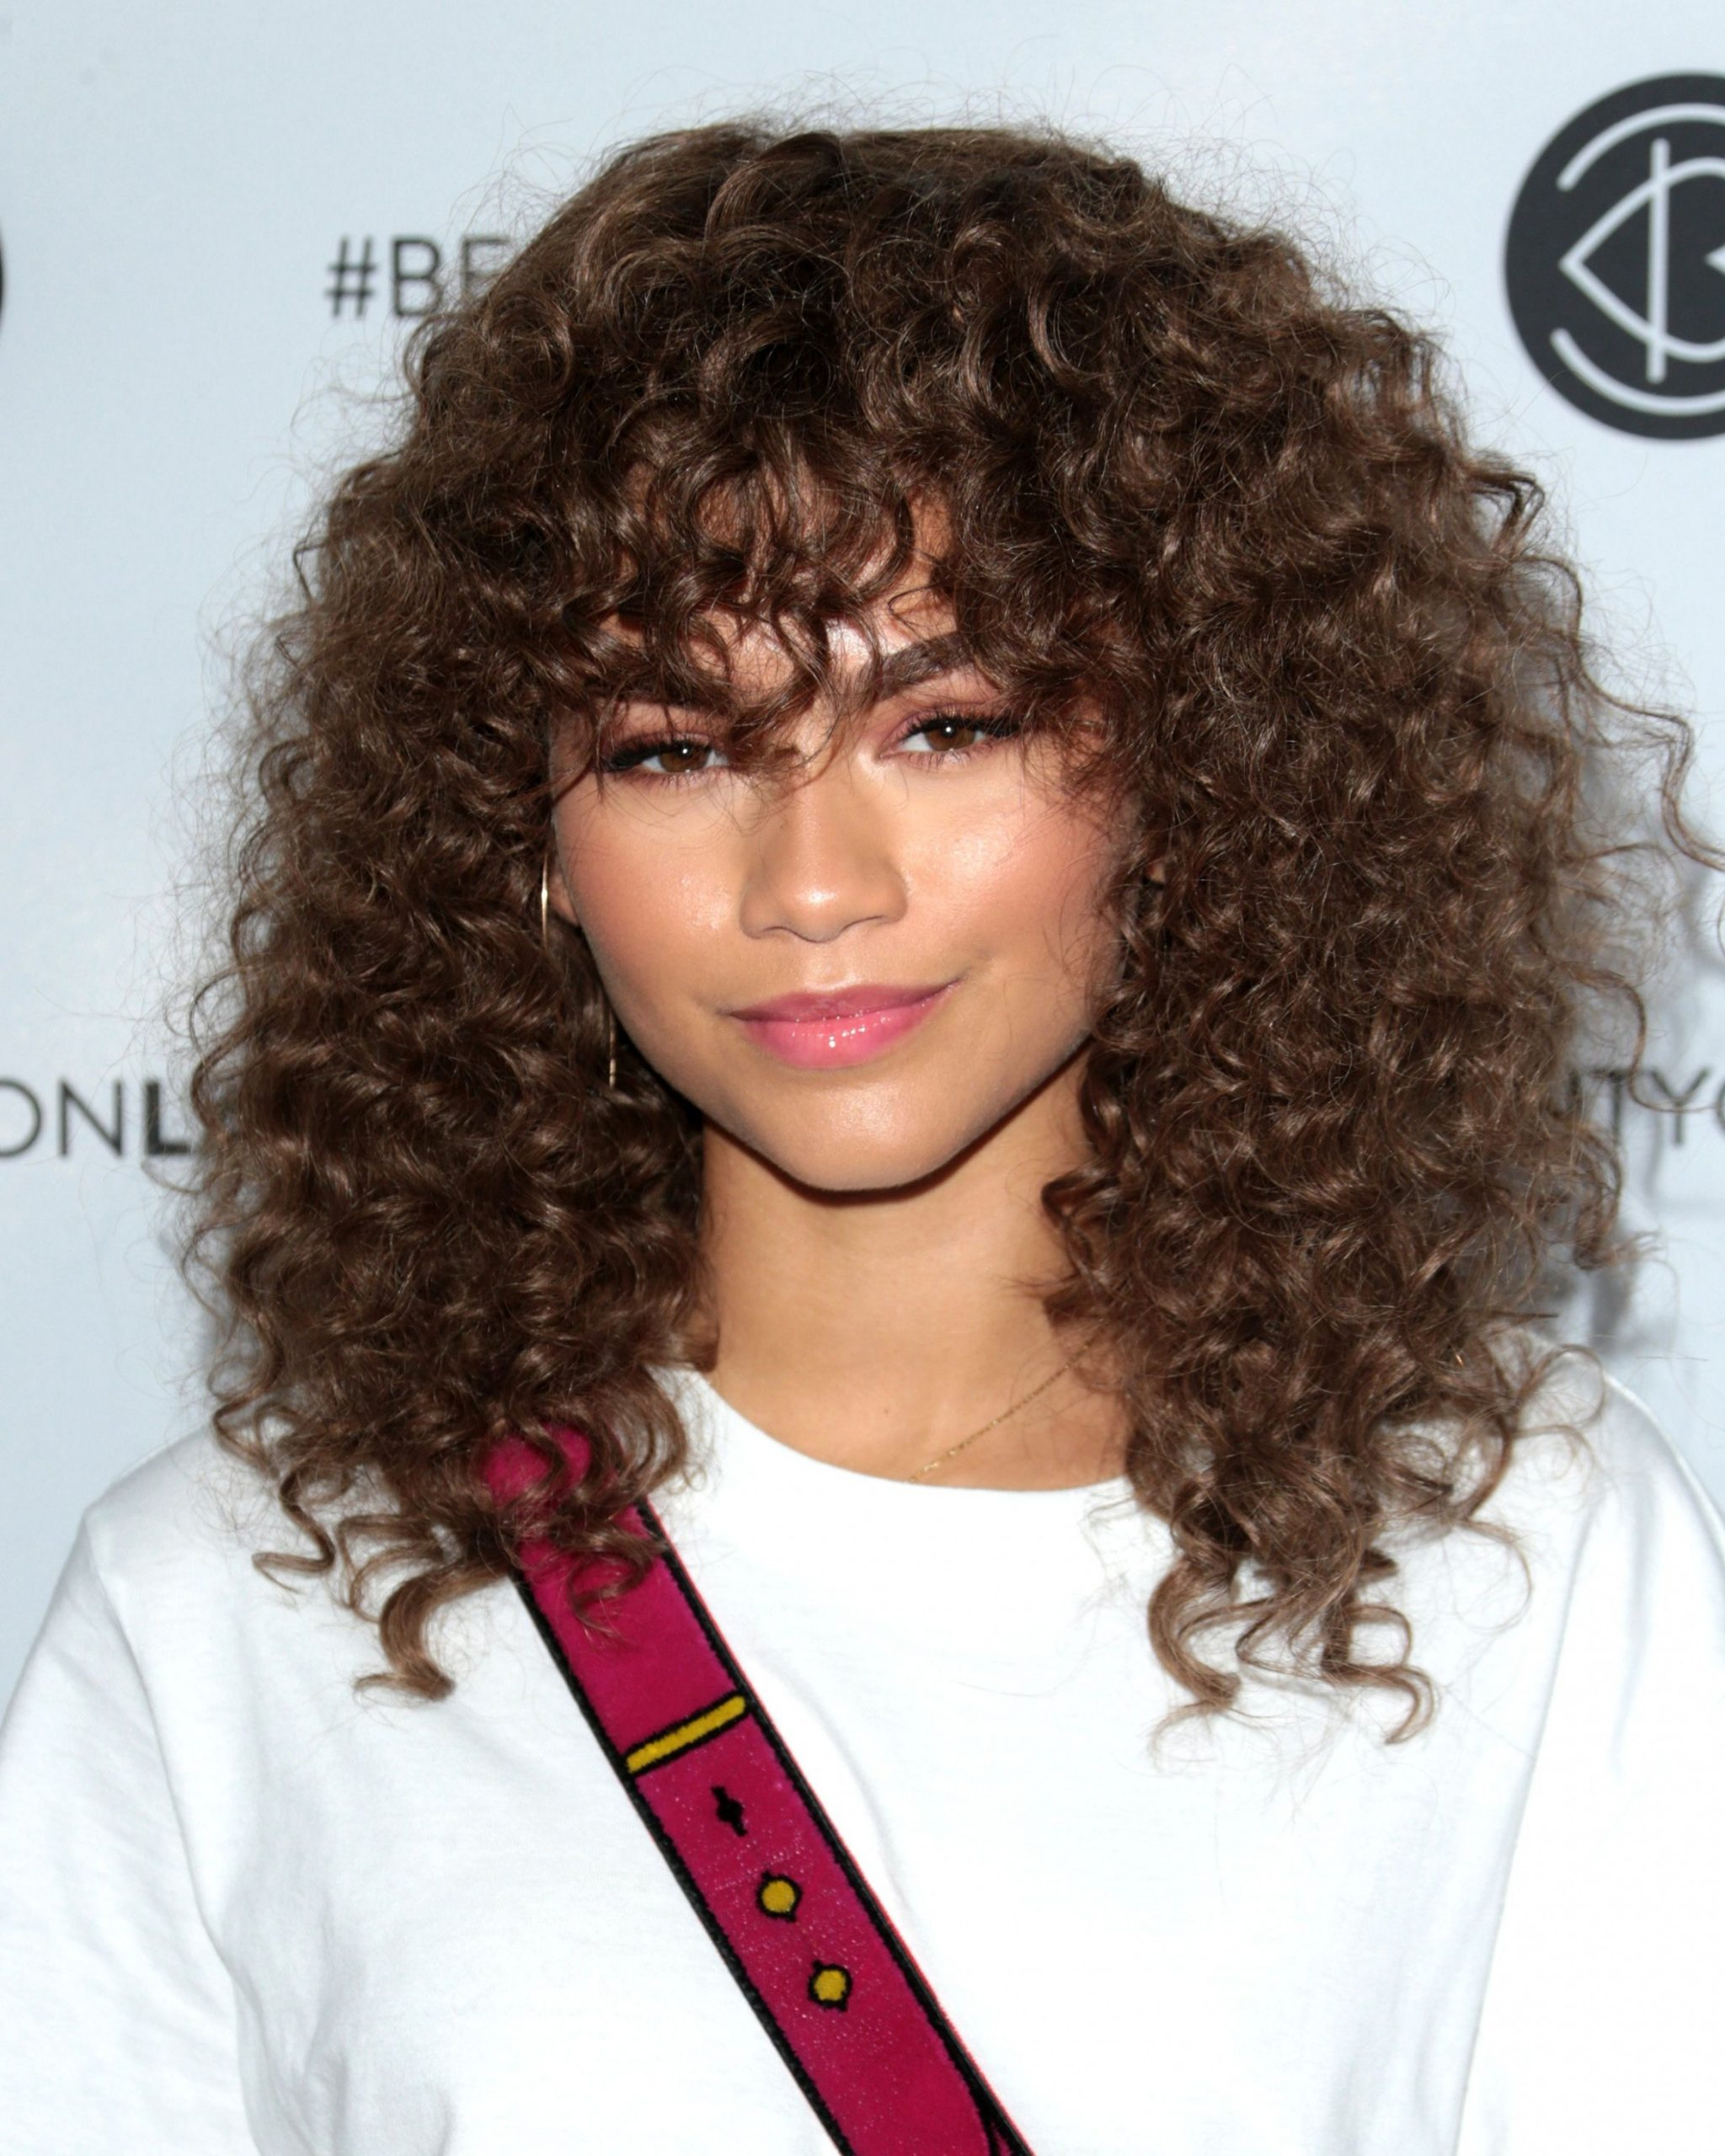 Can I Get Bangs With Curly Hair? A Hairstylist Breaks Down The